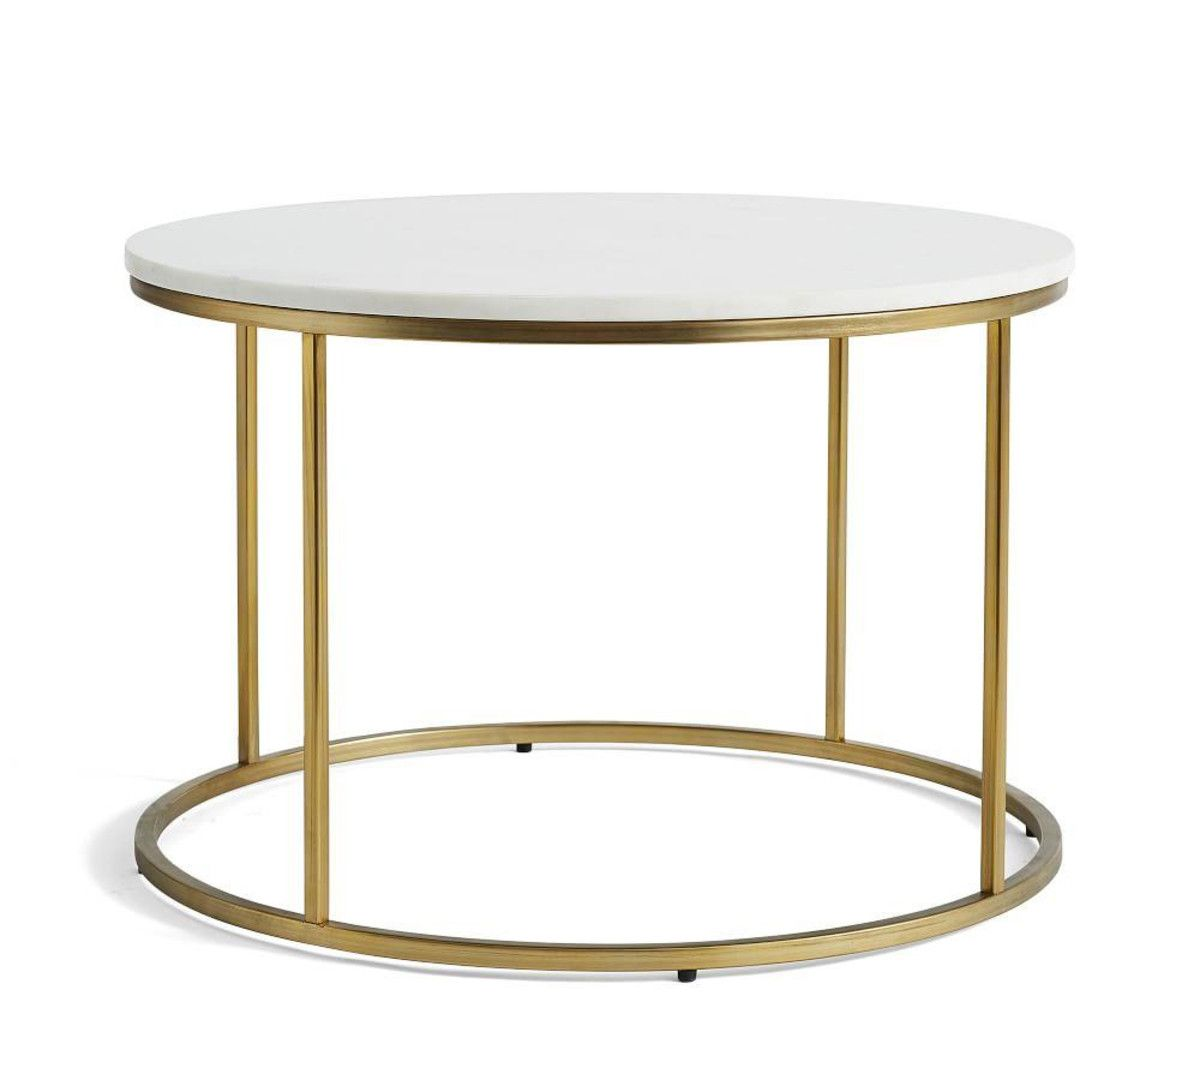 Delaney Round Coffee Table Marble Round Coffee Table Round Coffee Table Coffee Table Pottery Barn [ 1080 x 1200 Pixel ]